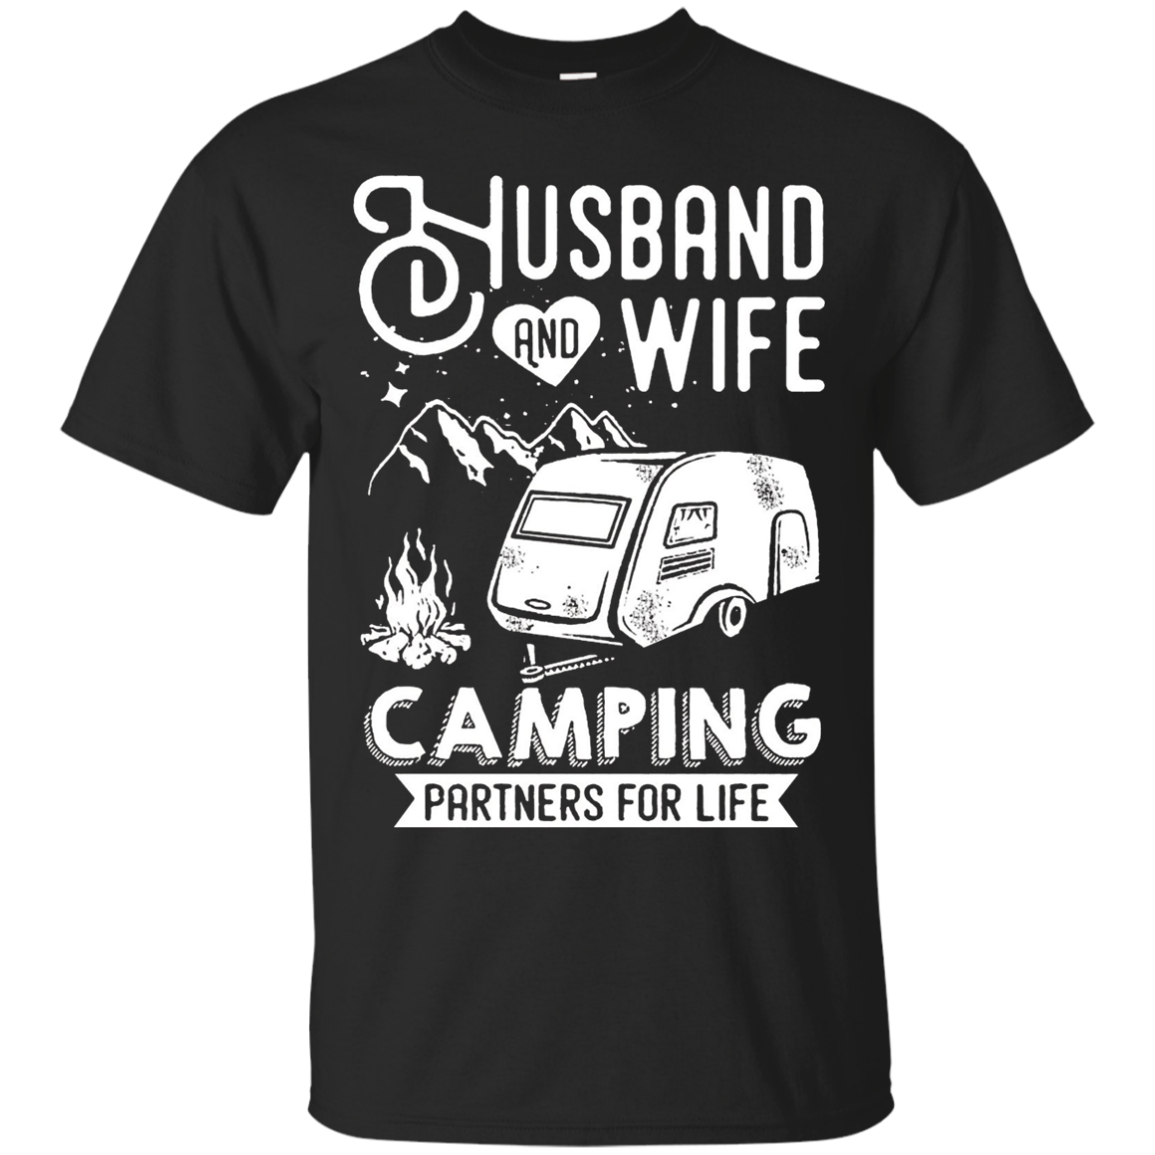 Husband and wife Camping partners for life T-shirt